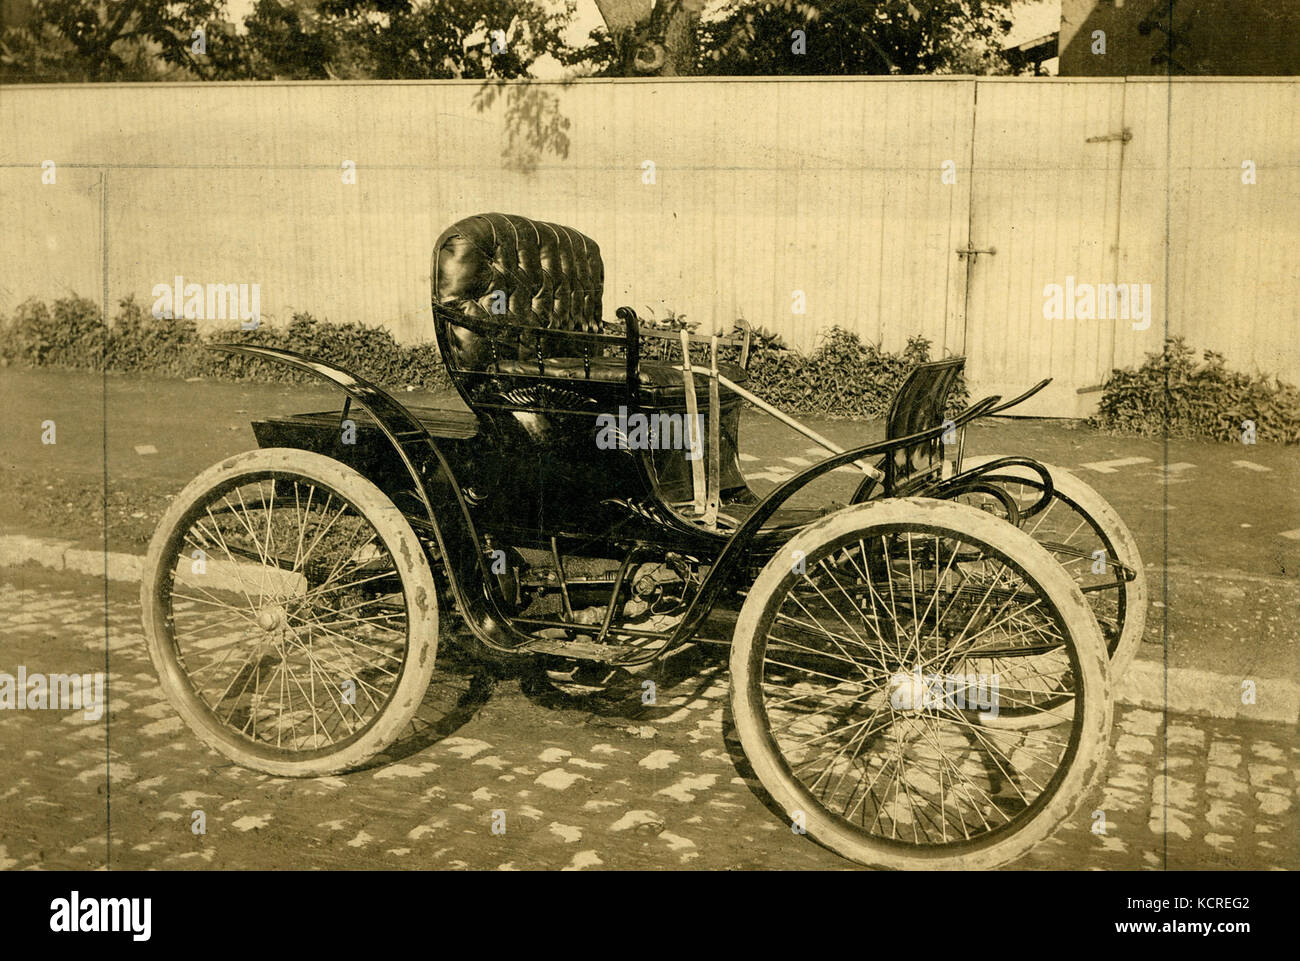 Awesome When Was The First Automobile Built Contemporary - Classic ...